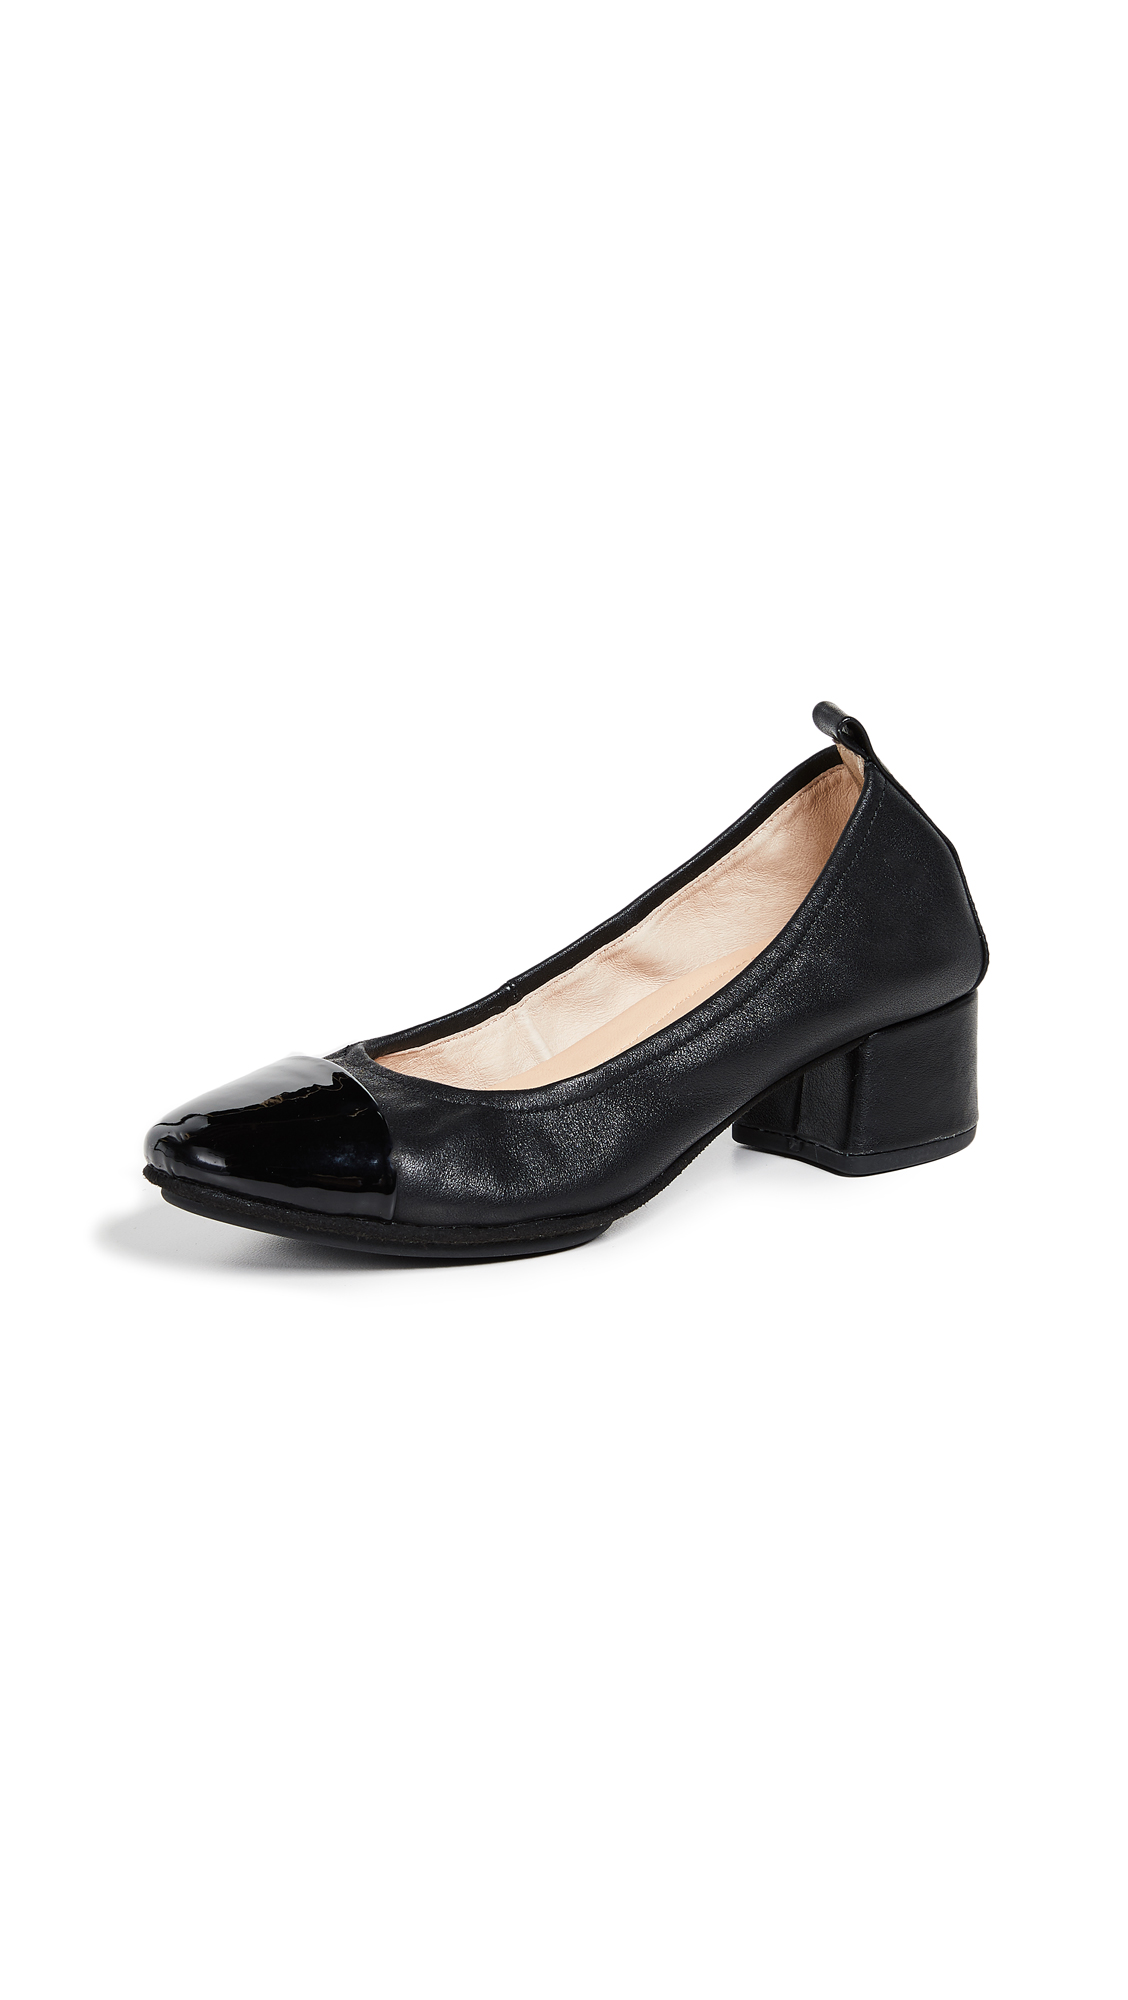 Yosi Samra Newton Cap Block Heel Pumps - Black